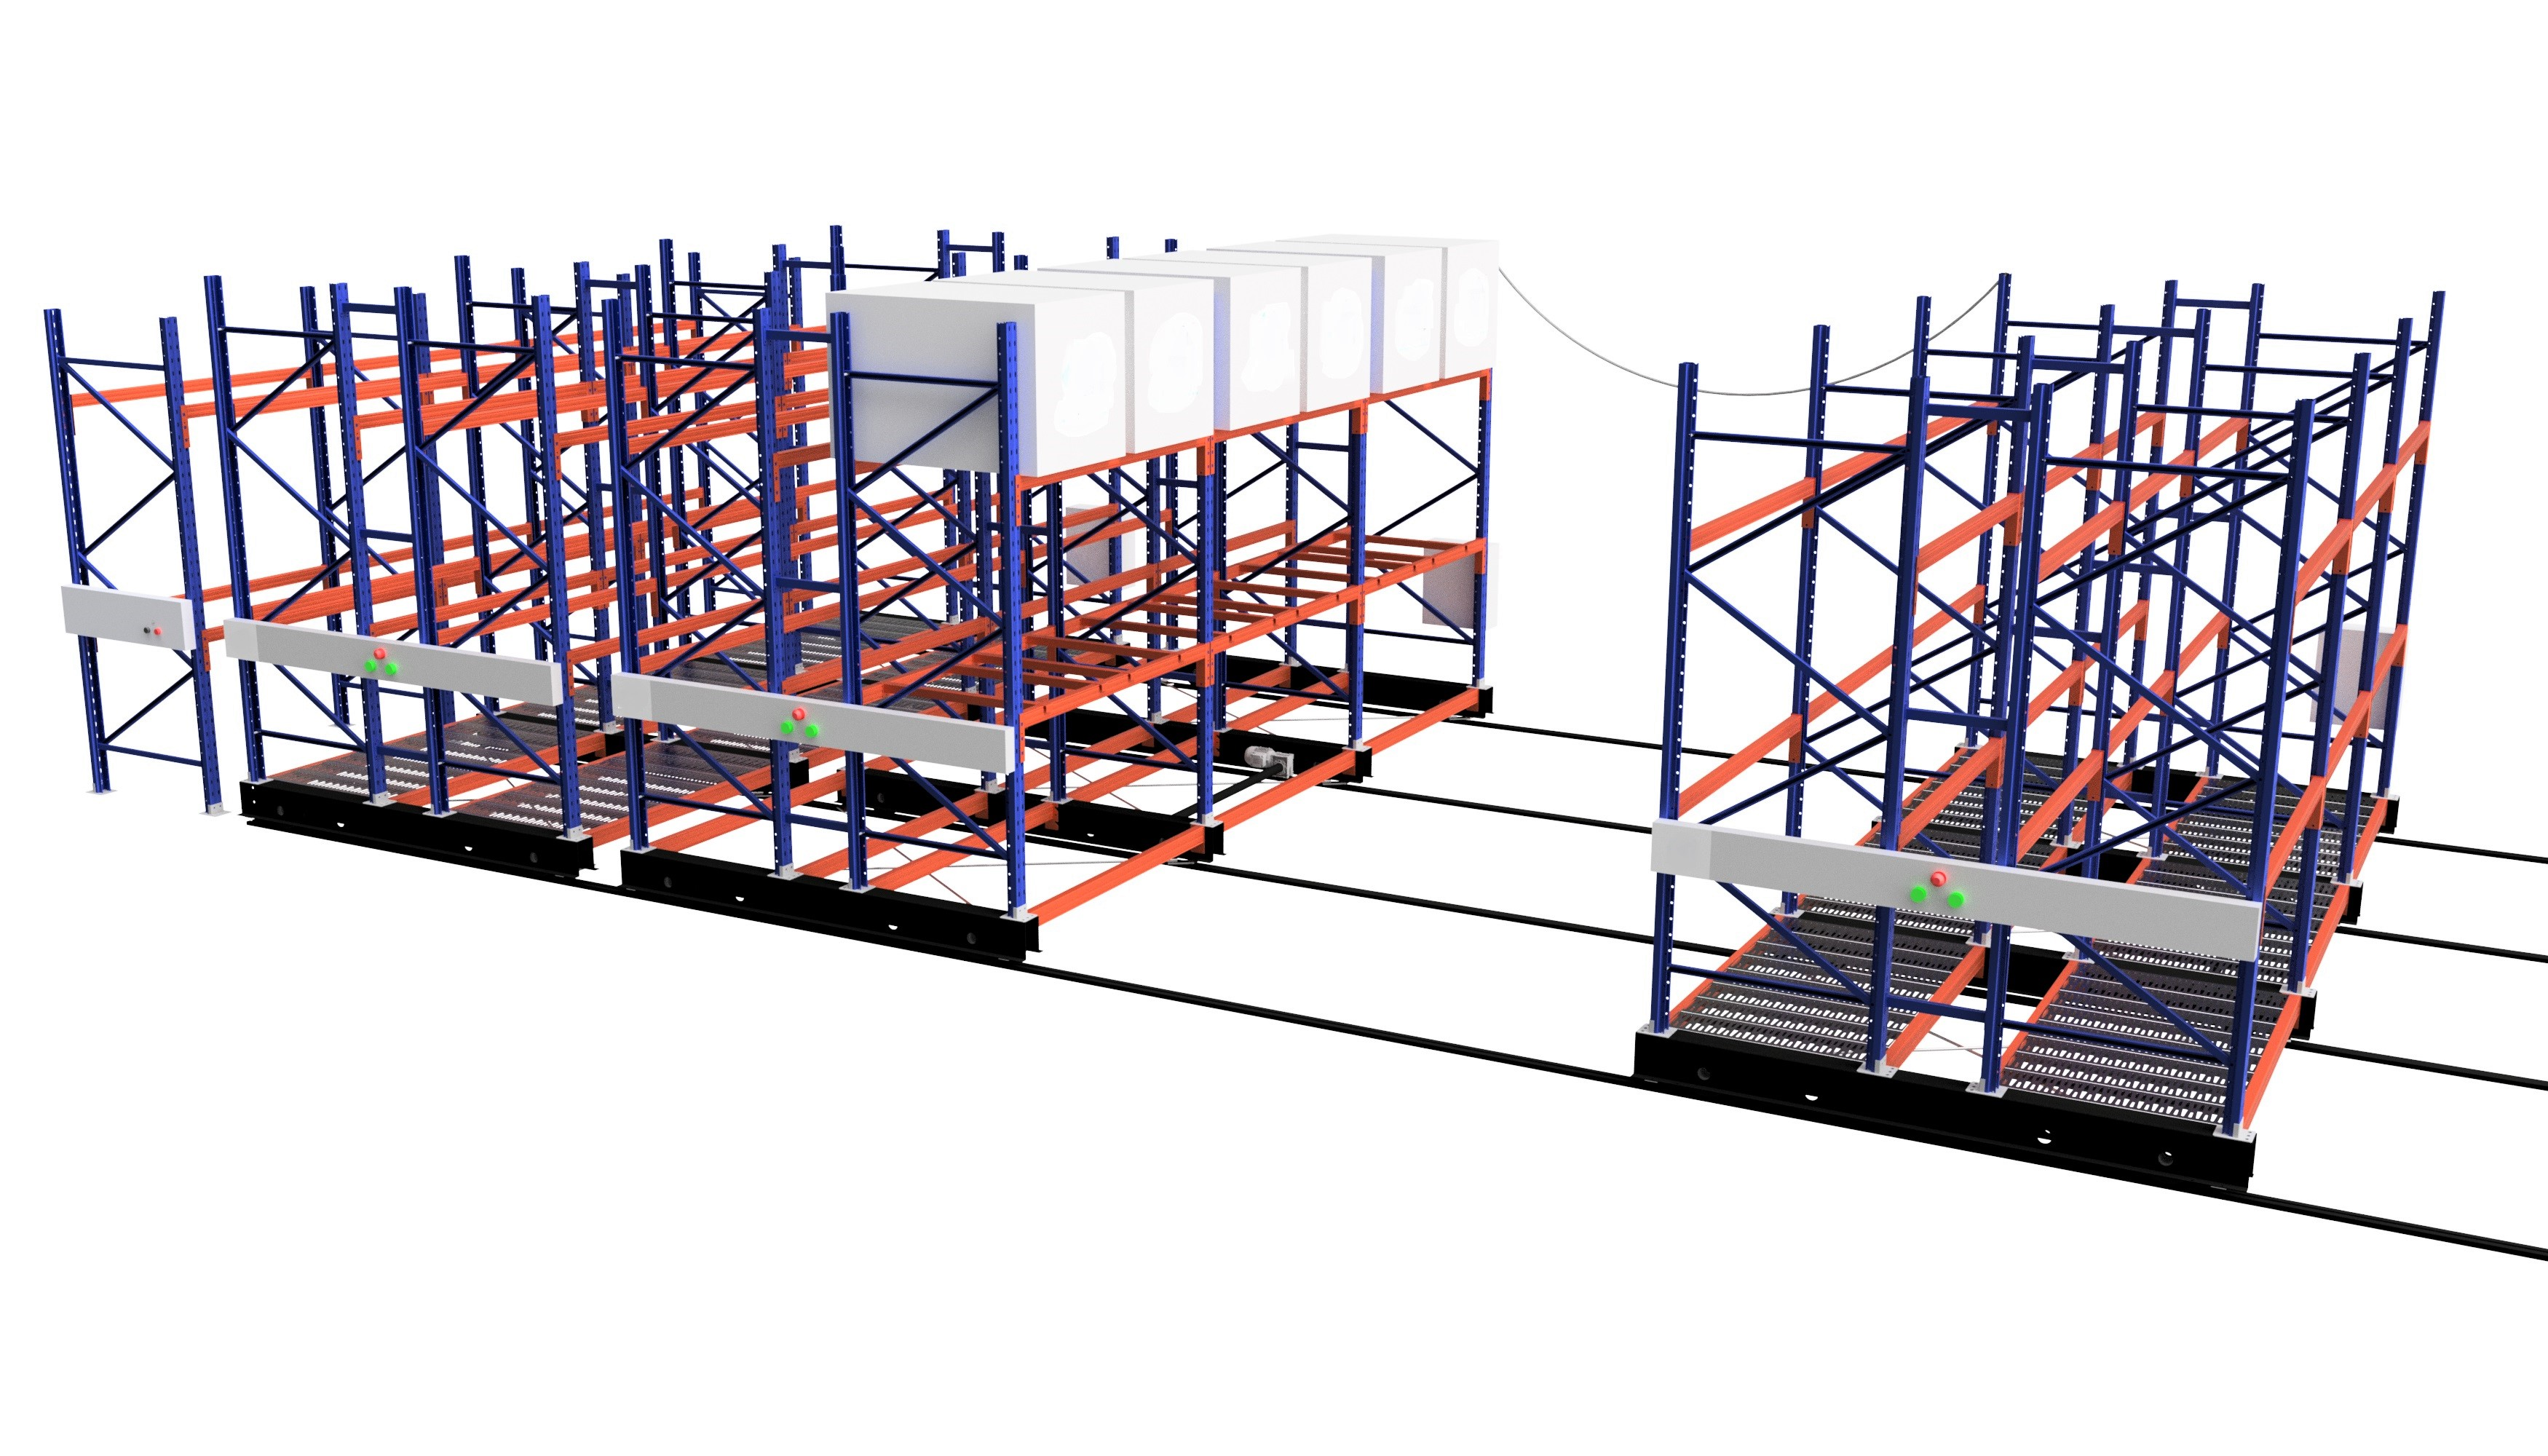 simulation picture of blue and orange goods shelf